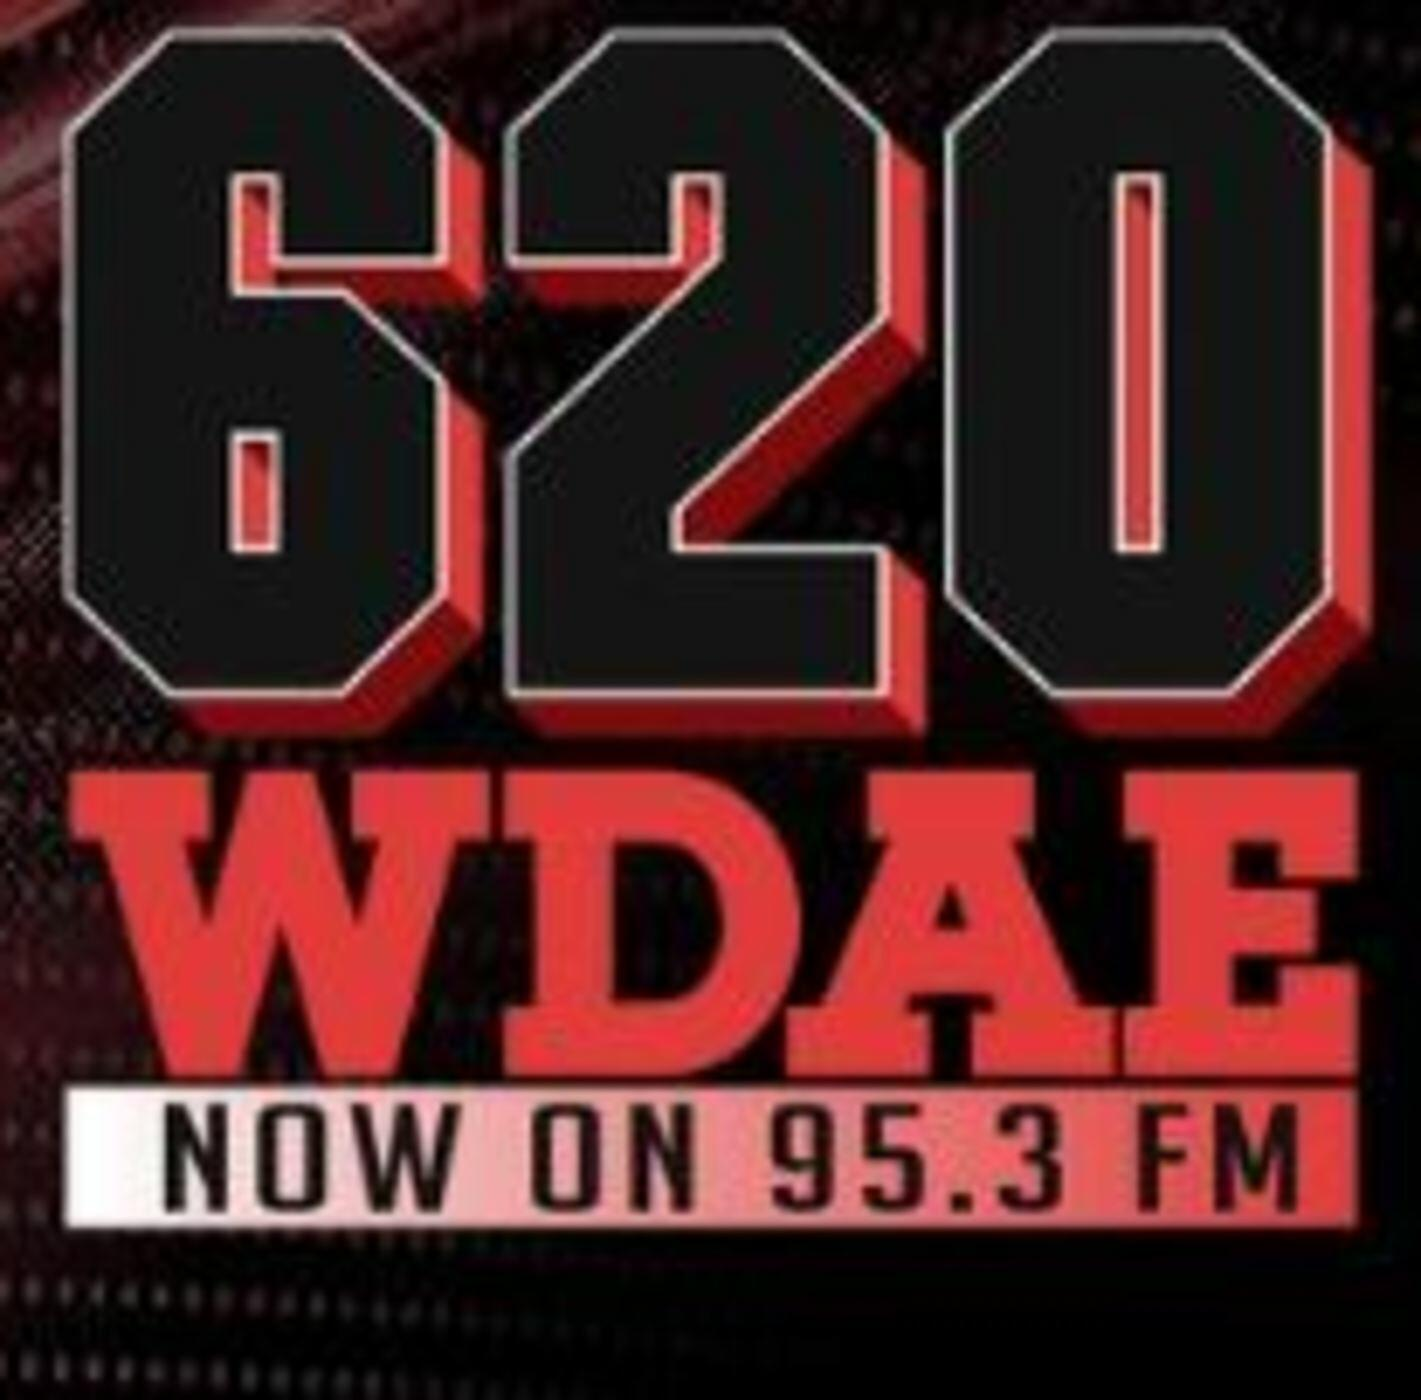 Listen to the WDAE On Demand Episode - The Insiders Week Three - Tampa Bay Buccaneers vs New York Giants on iHeartRadio | iHeartRadio